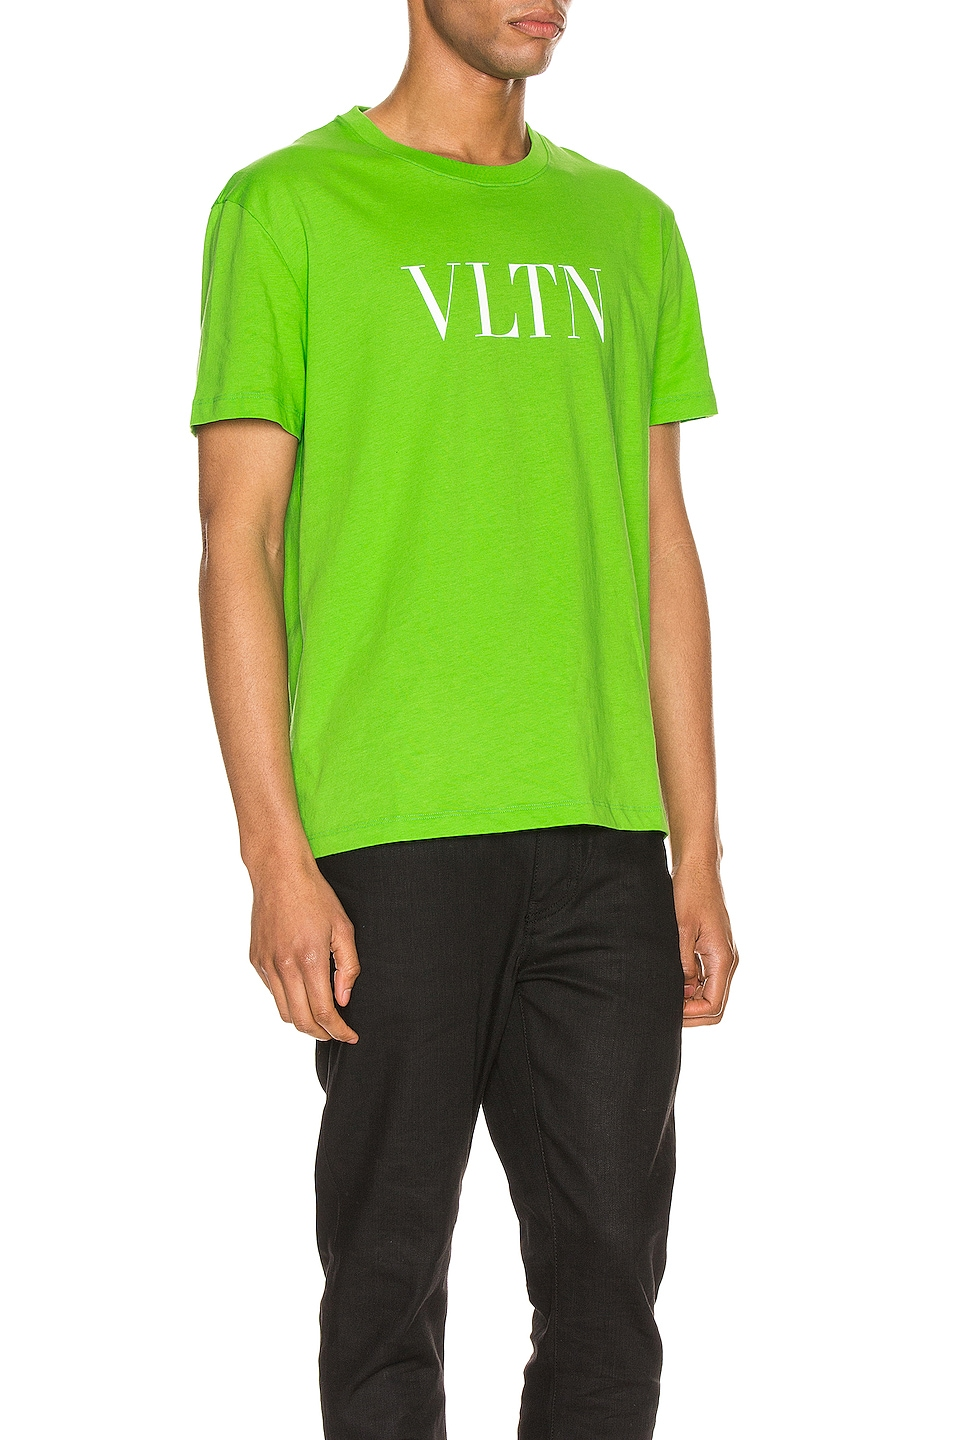 Image 2 of Valentino VLTN Tee in Fluo Green